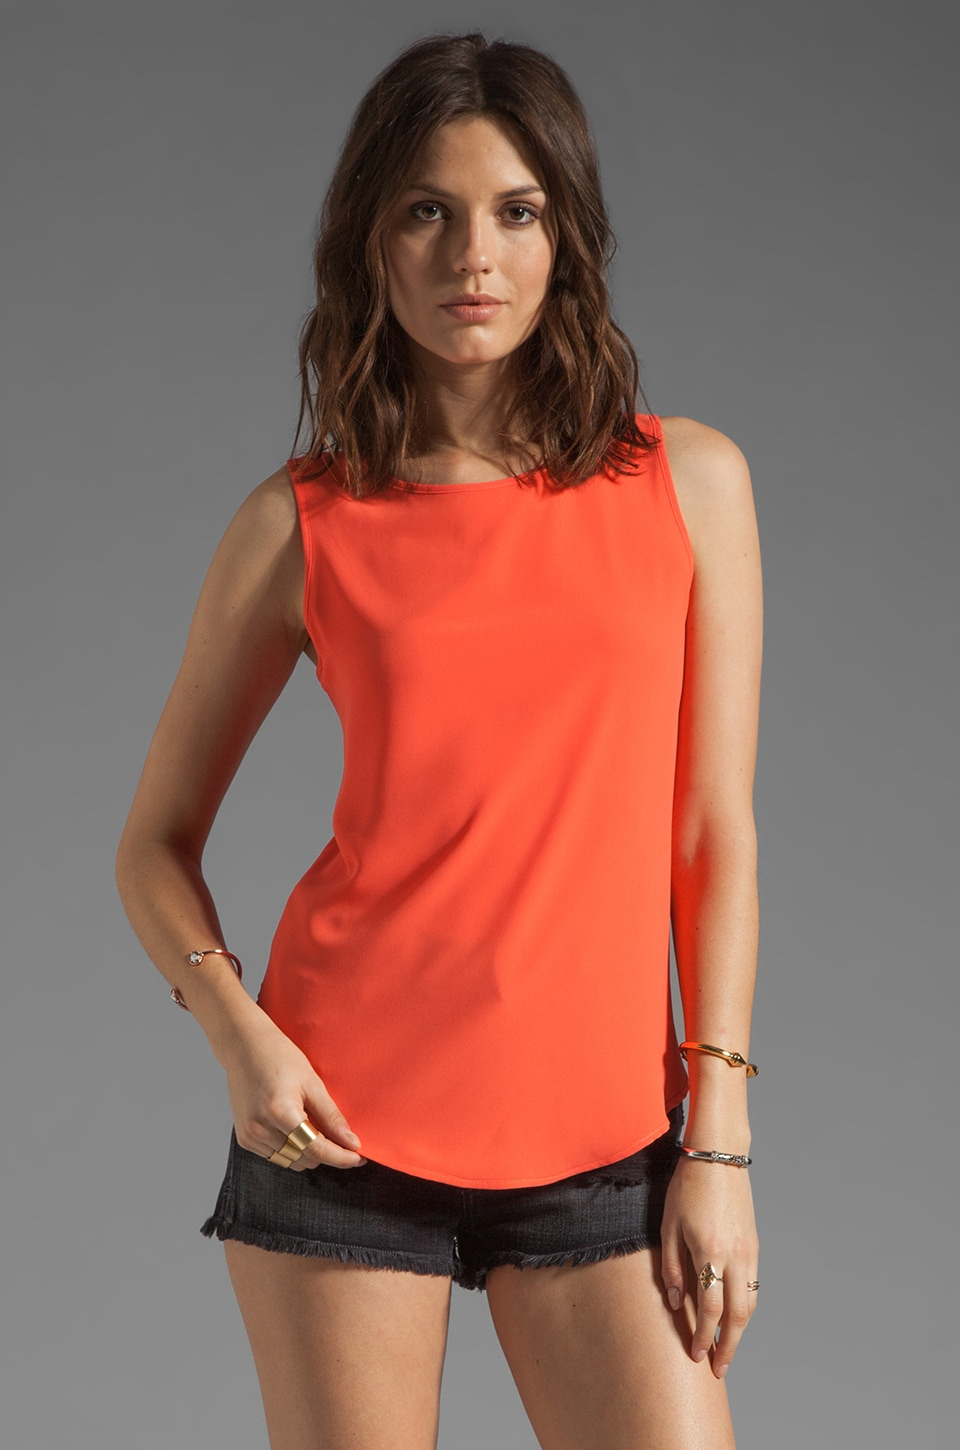 BLAQUE LABEL Sleeveless Top in Coral